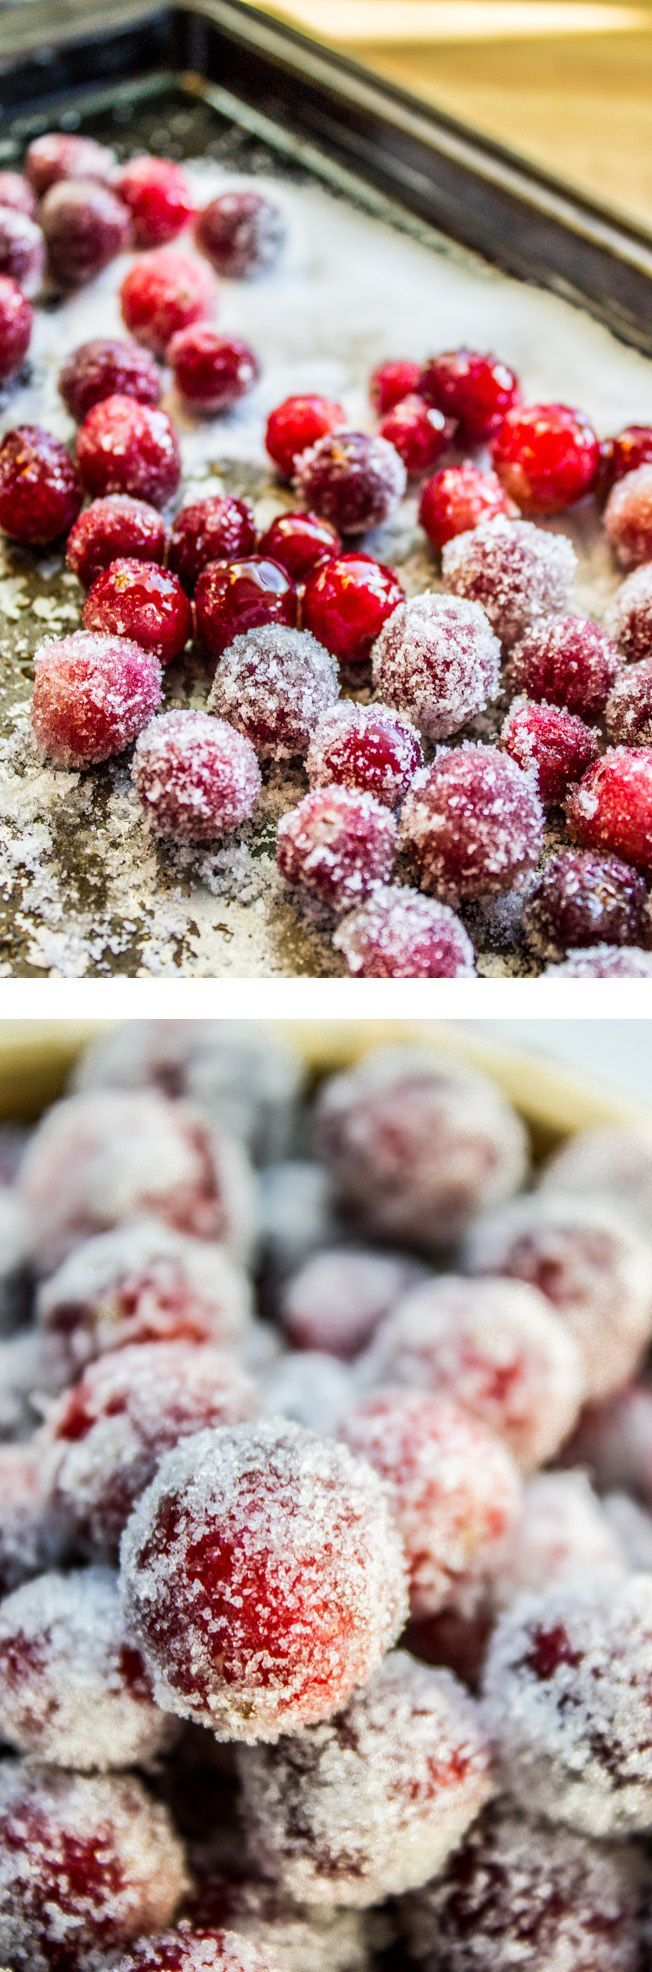 The Easiest Sugared Cranberries - The Food Charlatan // These gorgeous, sparkling cranberries are the perfect appetizer or dessert garnish for Thanksgiving and Christmas! You don't even have to make your own simple syrup (and risk popping your cranberries). This recipe is totally foolproof.